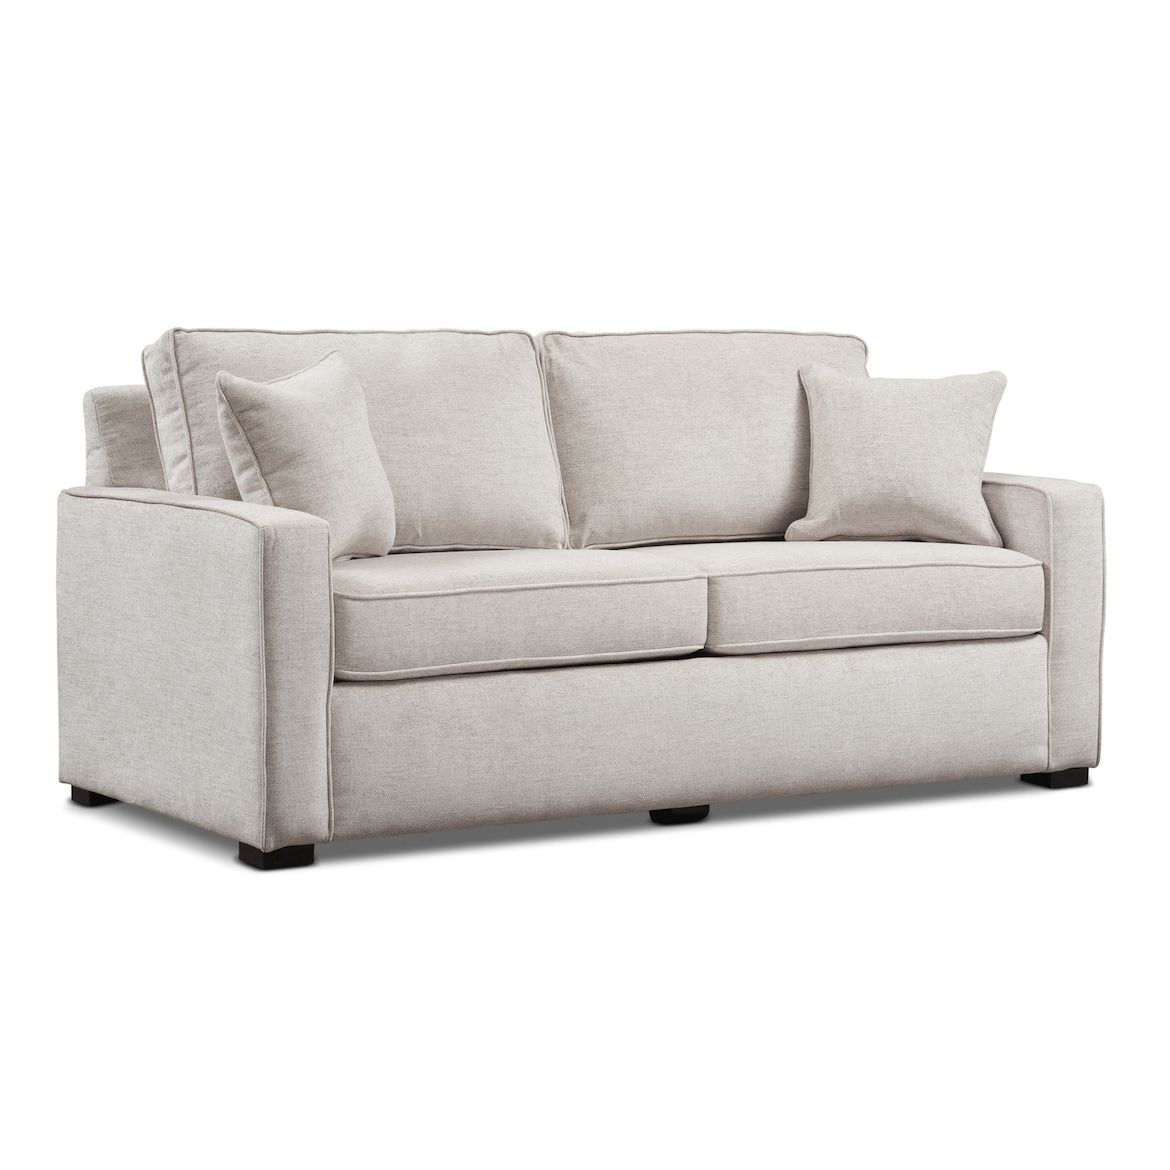 Mayson 78 With Images Cheap Living Room Furniture Sofa Furniture